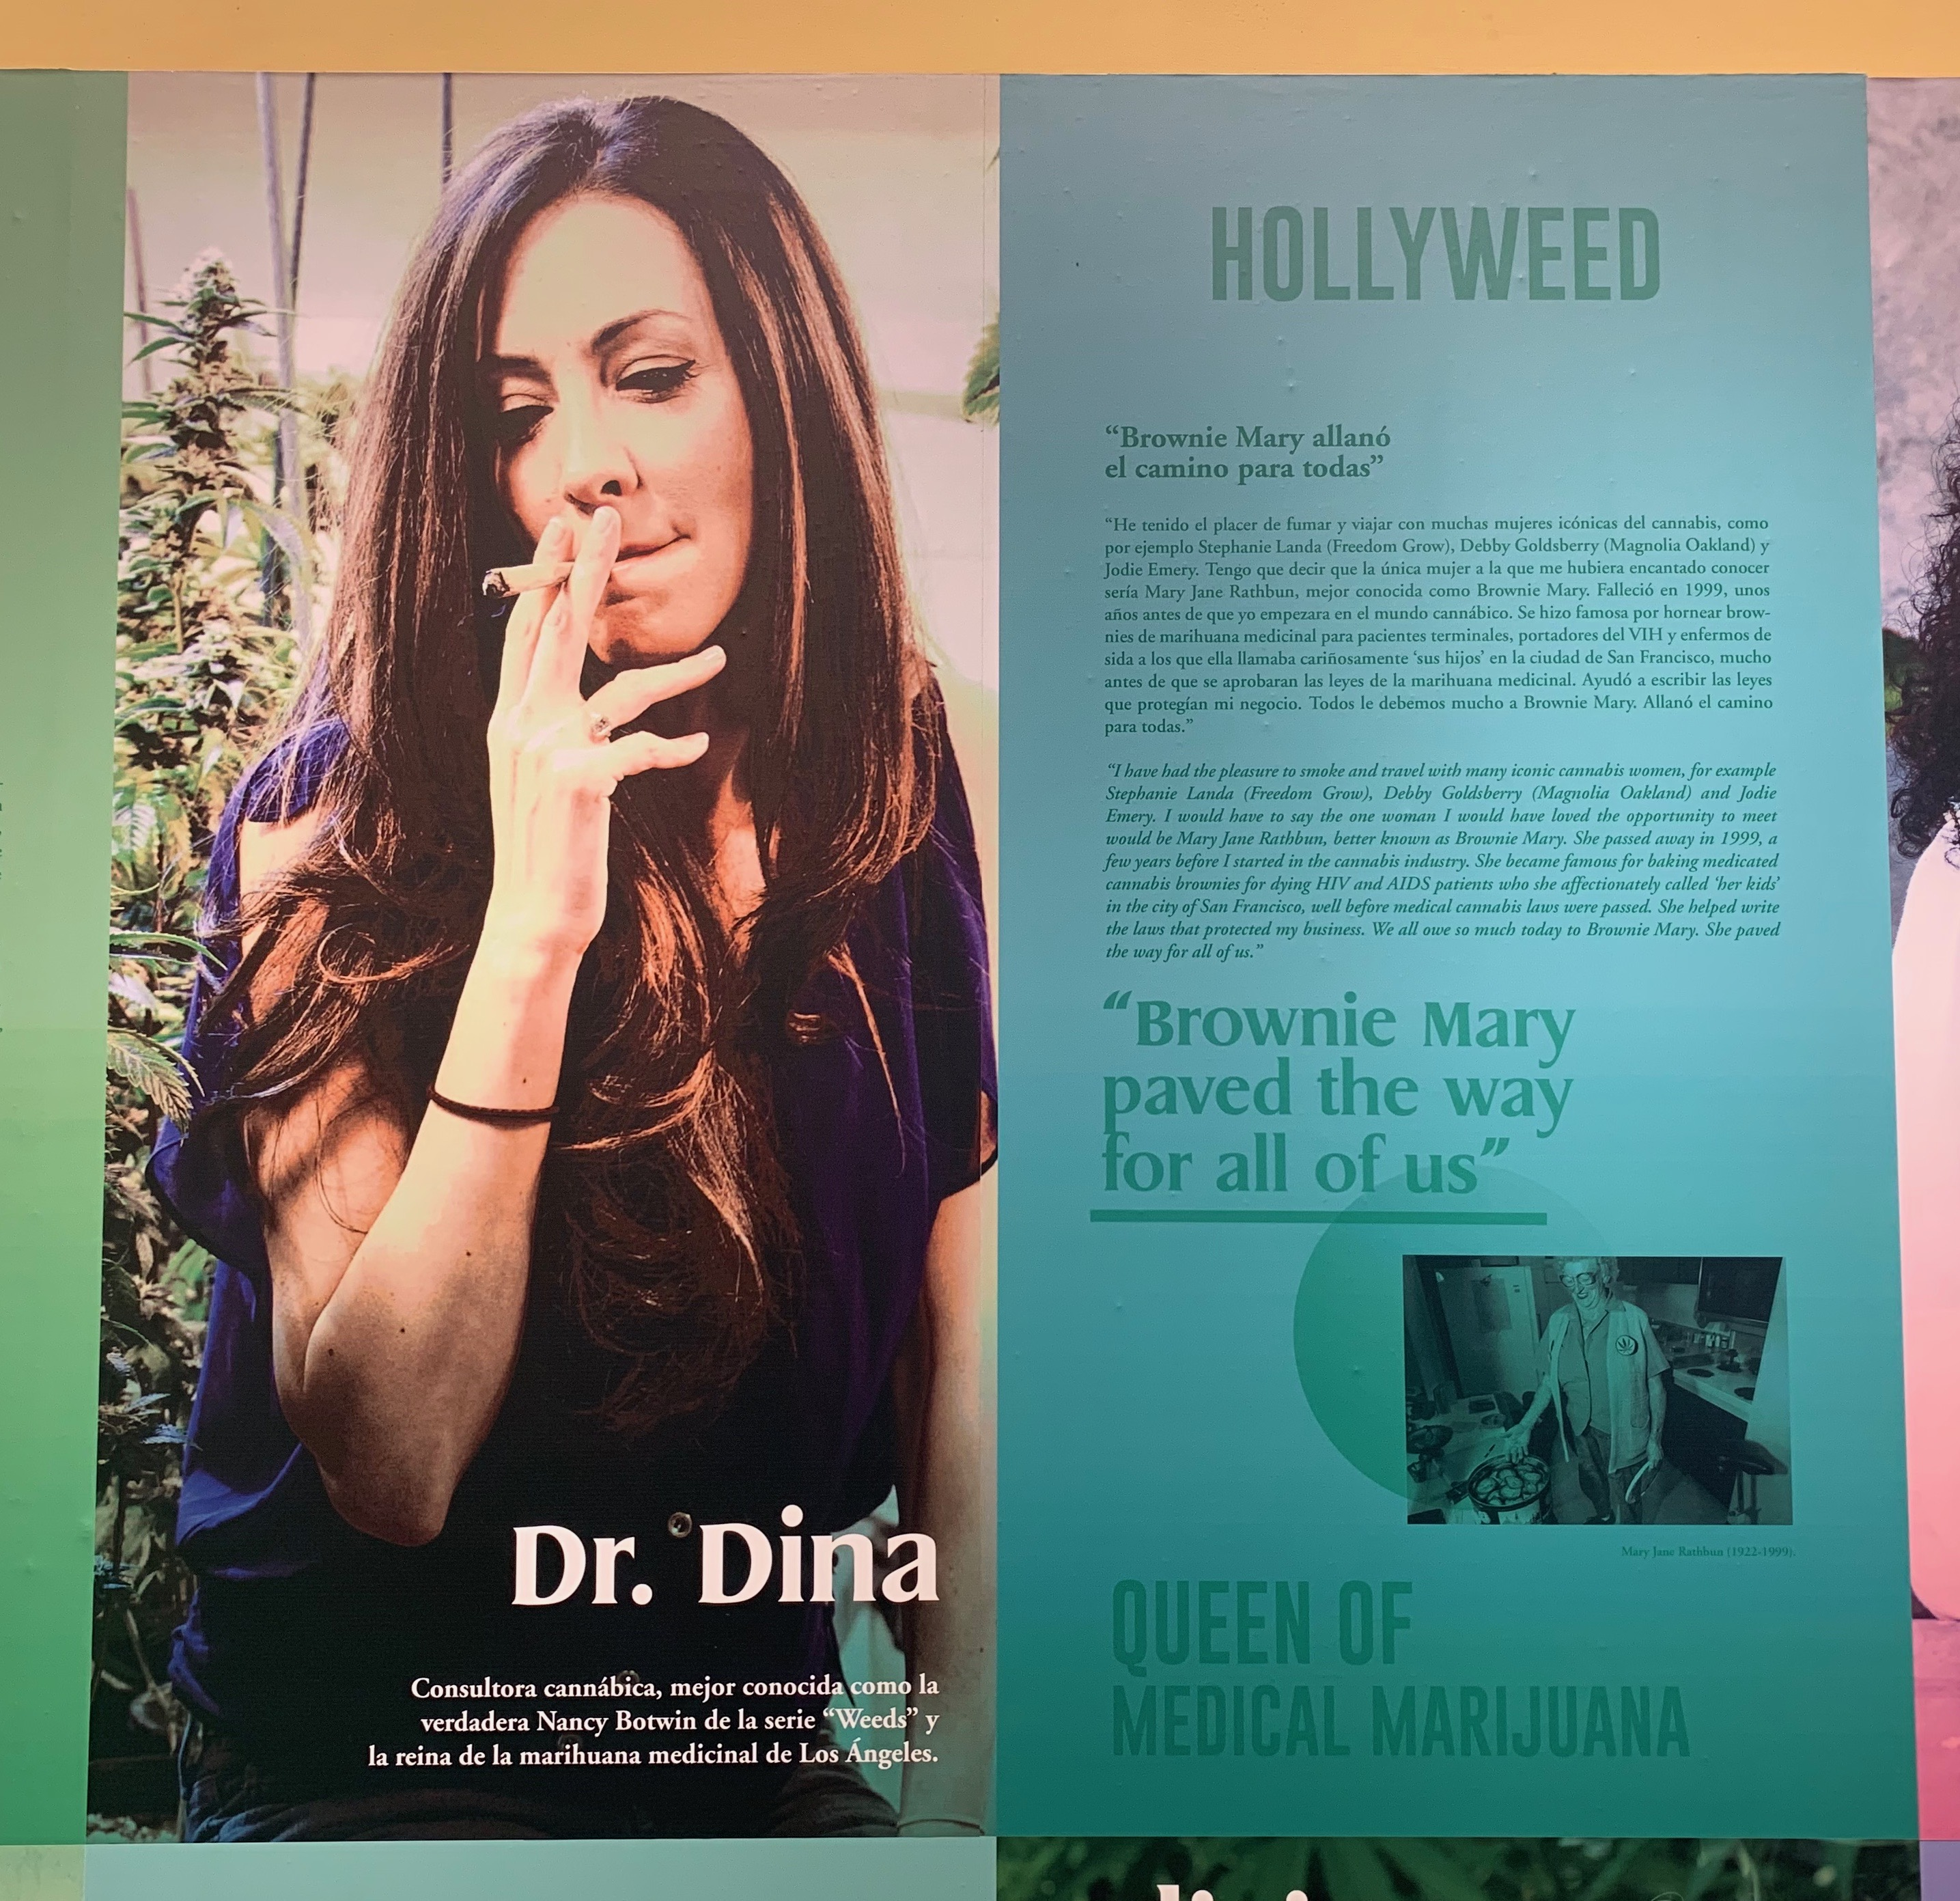 dr dina snoop dogg hollywood cannabis